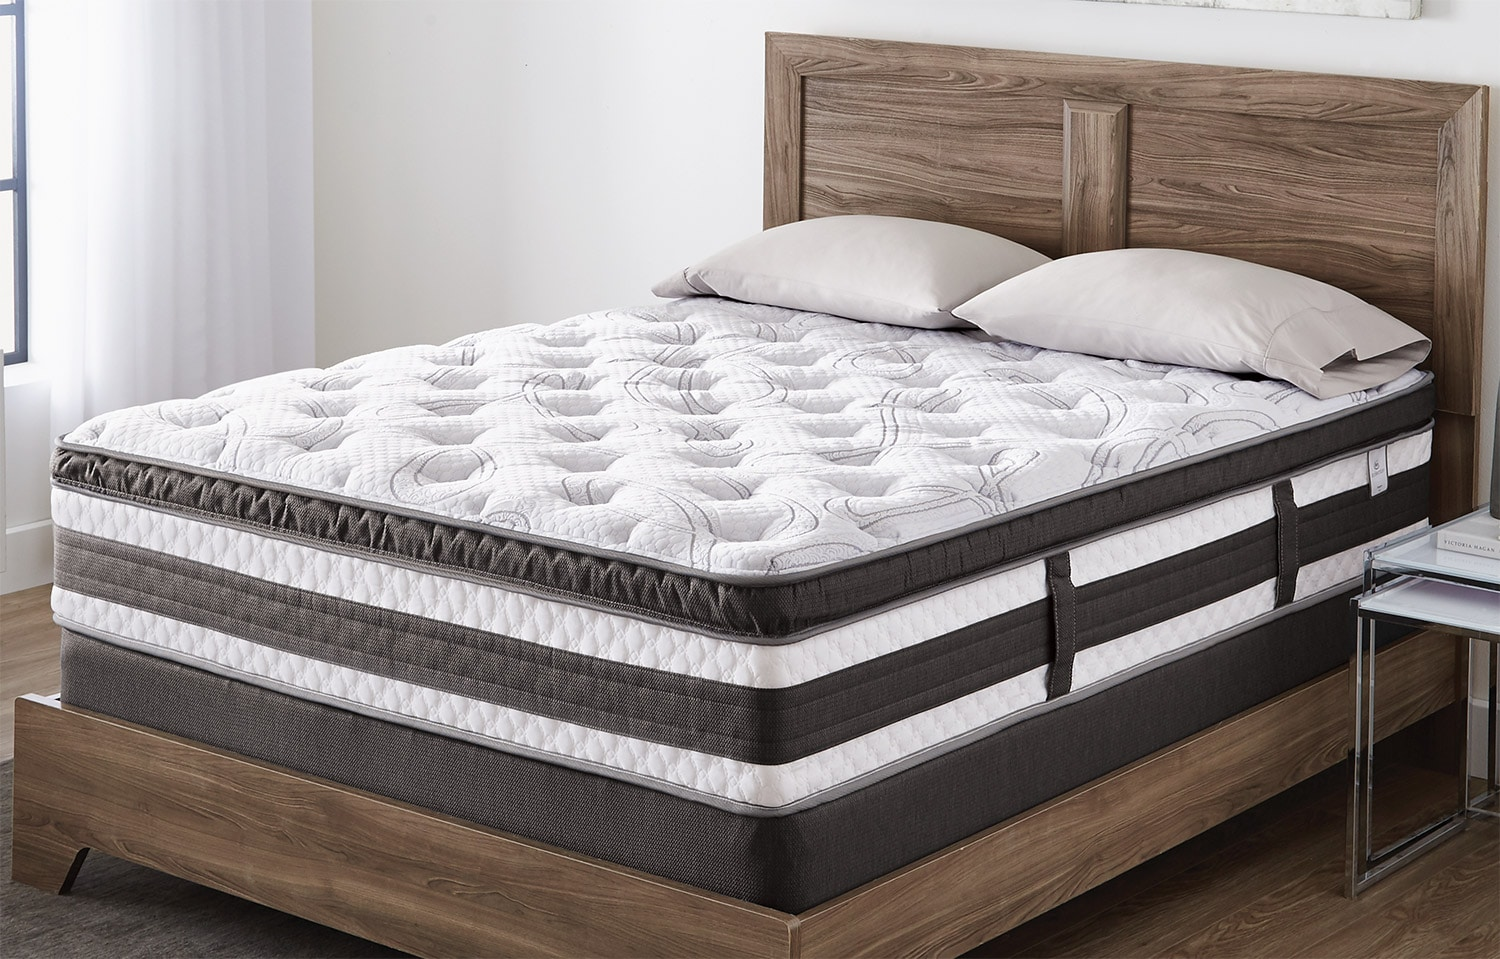 Mattresses and Bedding - Serta iCollection™ Kingsport Euro-Top Luxury Firm Full Mattress Set